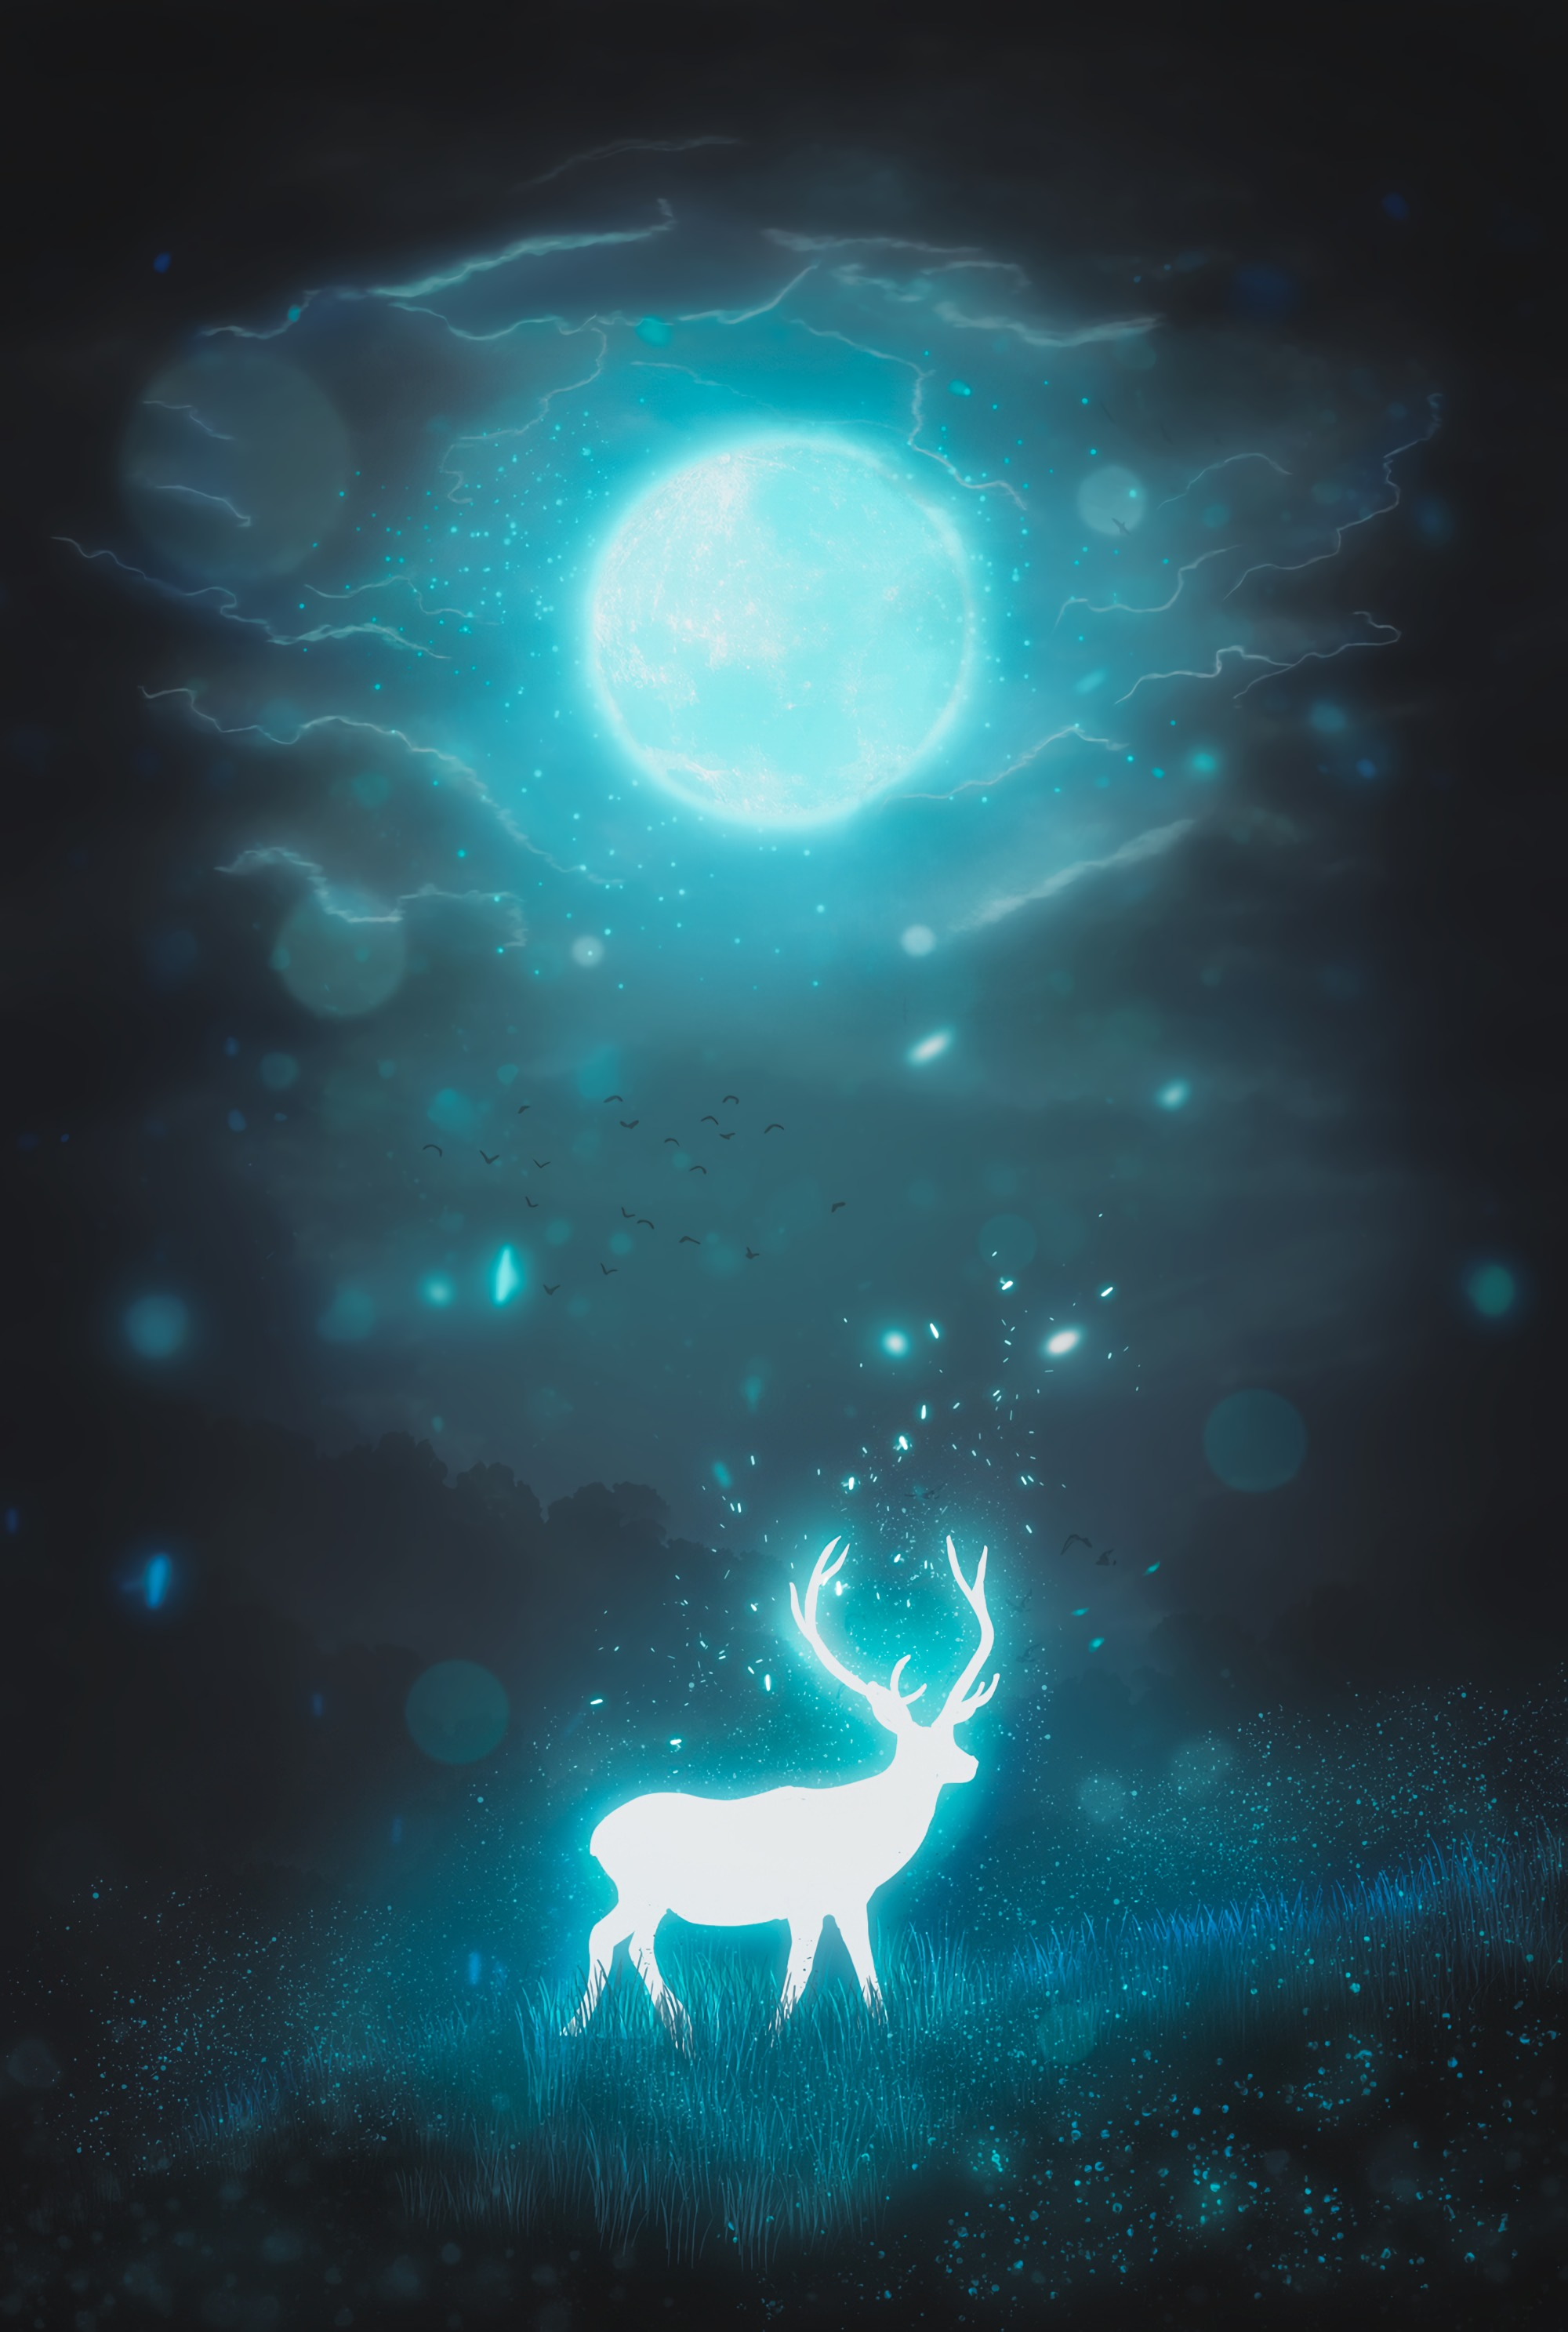 71756 download wallpaper Art, Deer, Night, Moon, Glow, Glare screensavers and pictures for free